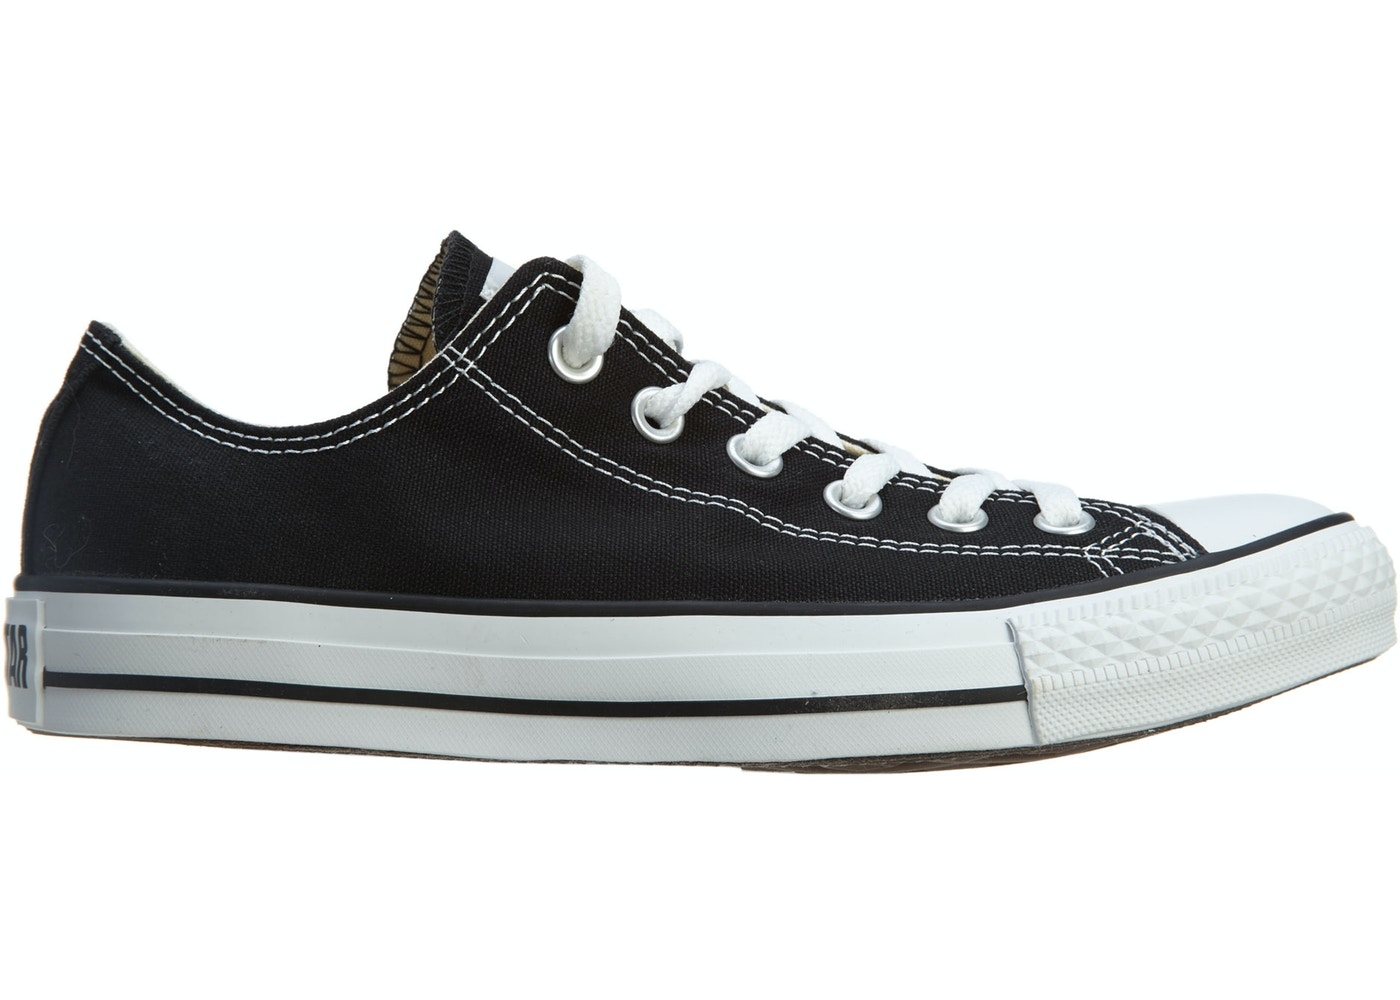 eadfb7a1893 Sell. or Ask. Size: 9.5. View All Bids. Converse Chuck Taylor All Star Ox  Black ...